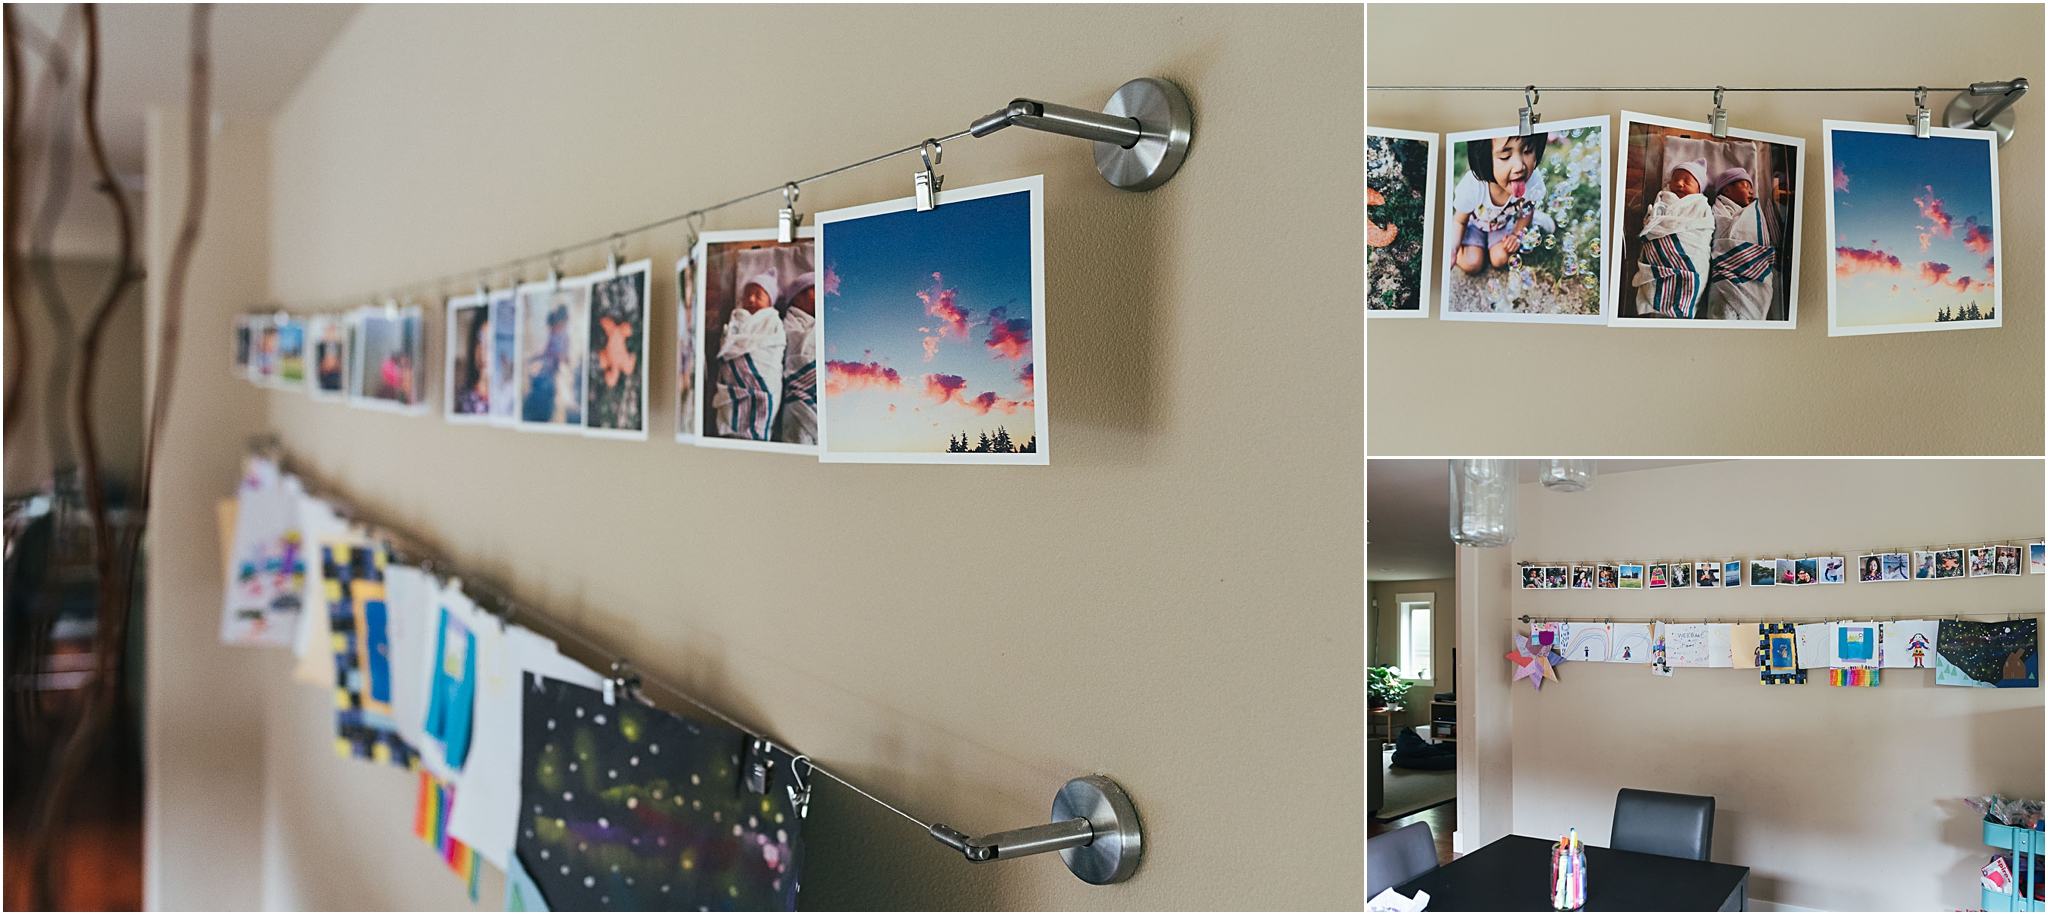 wire curtain rod used a photo display in dining room